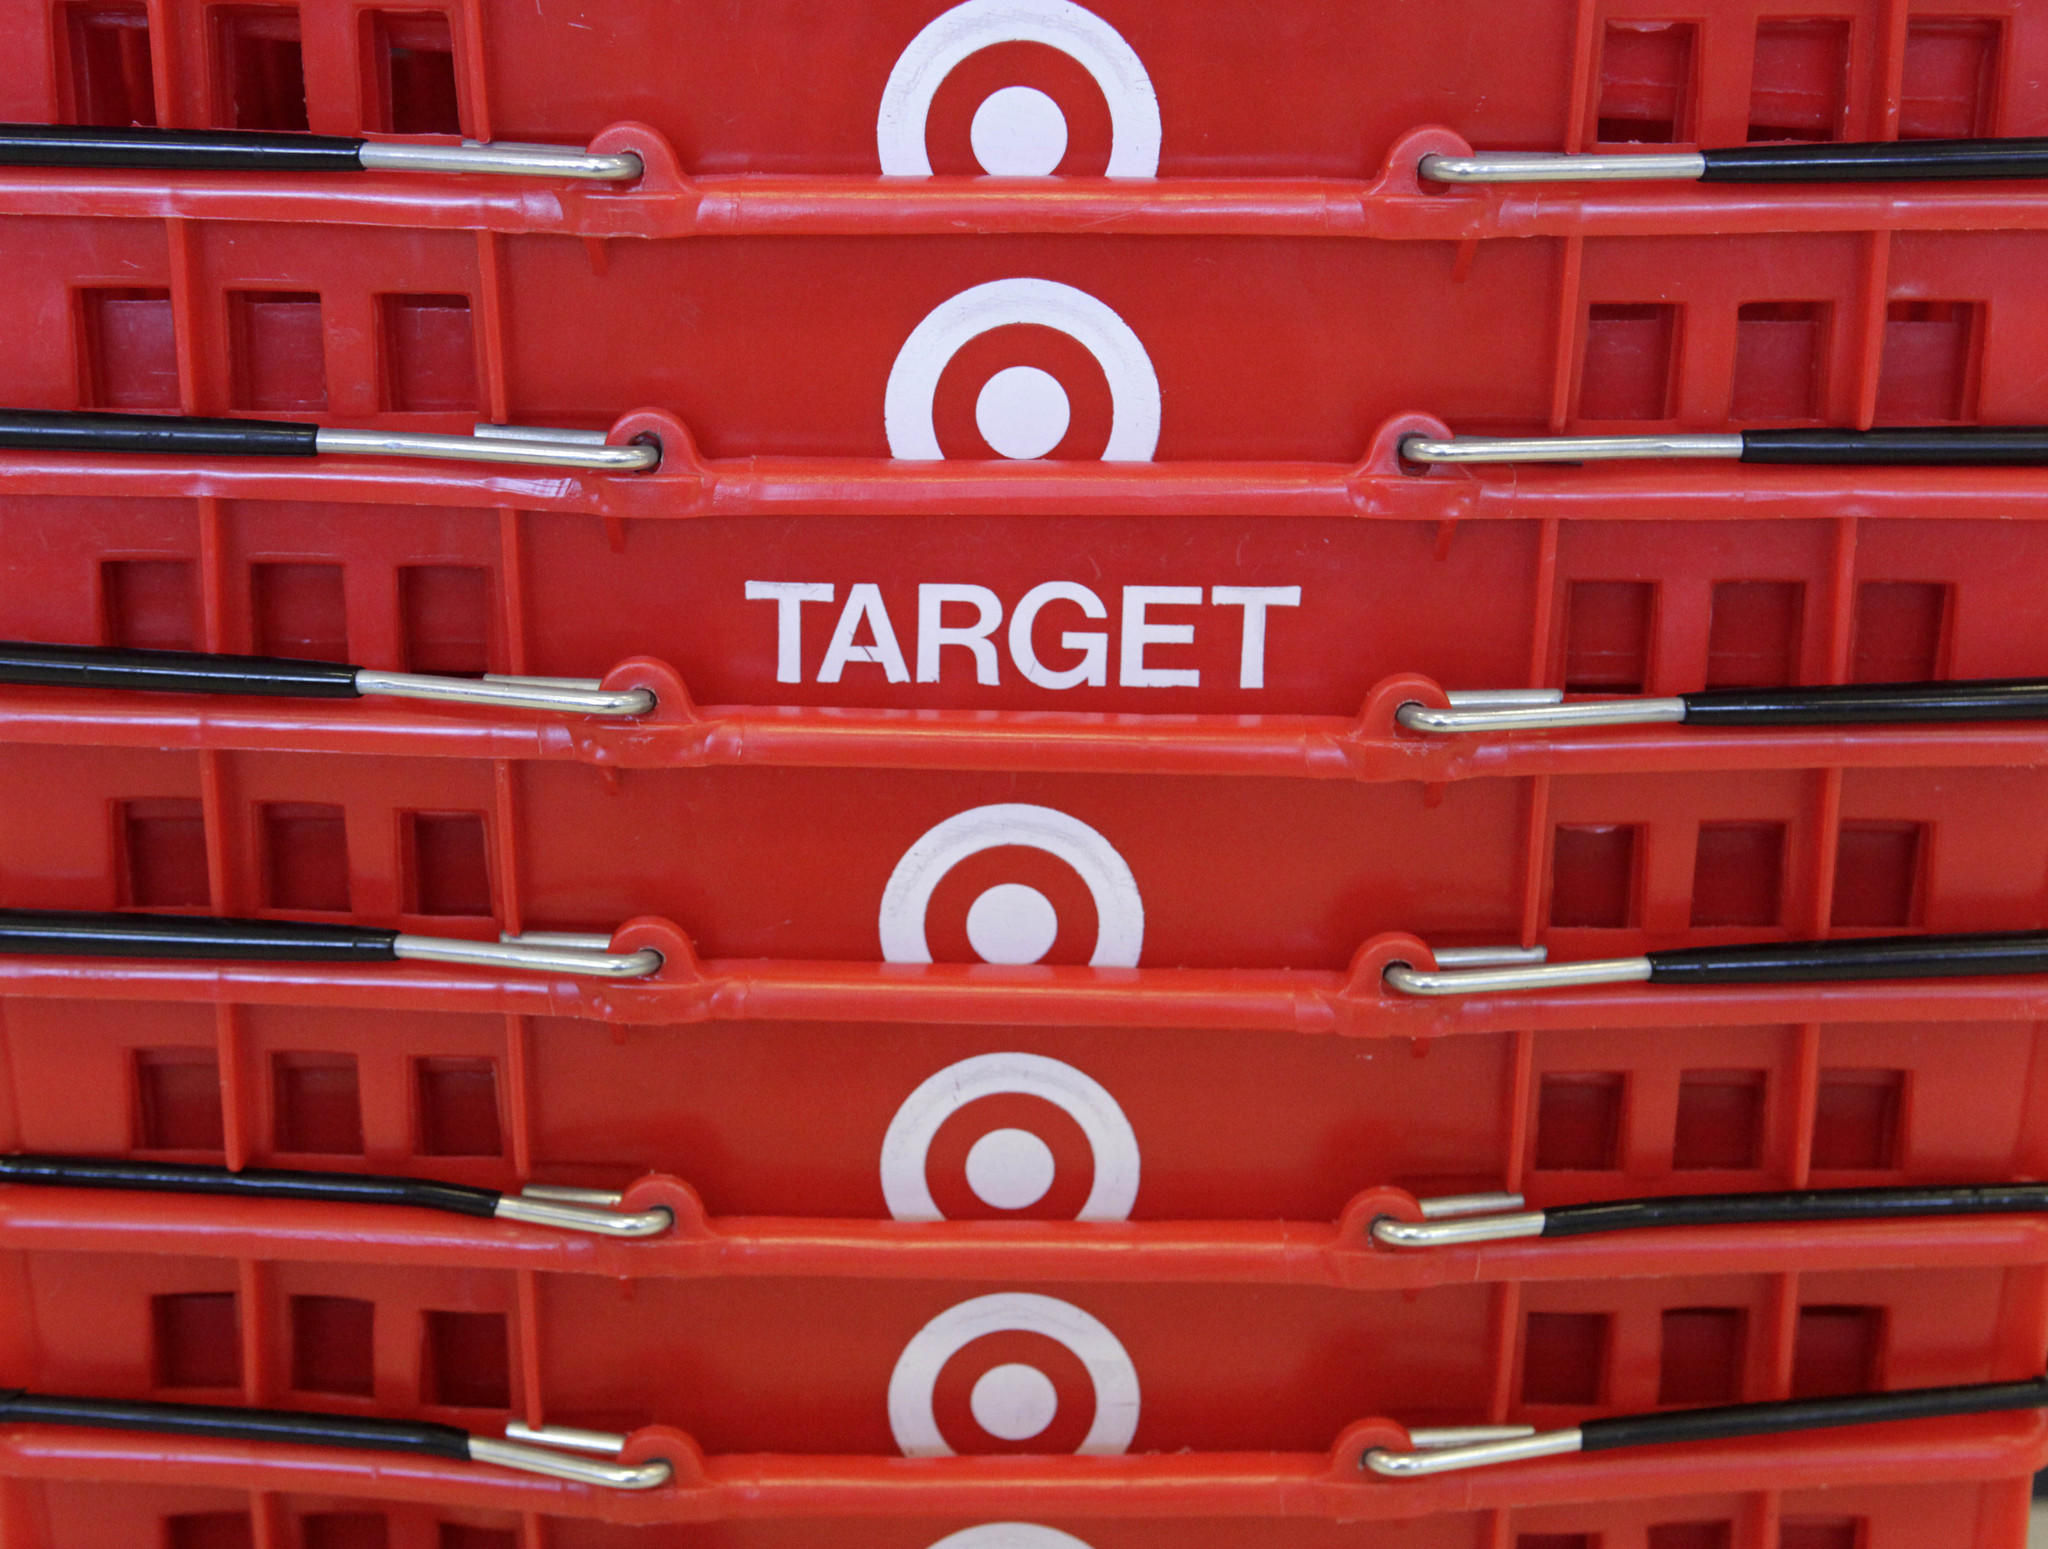 Target is offering a 10% discount this weekend after confirming a massive data breach.